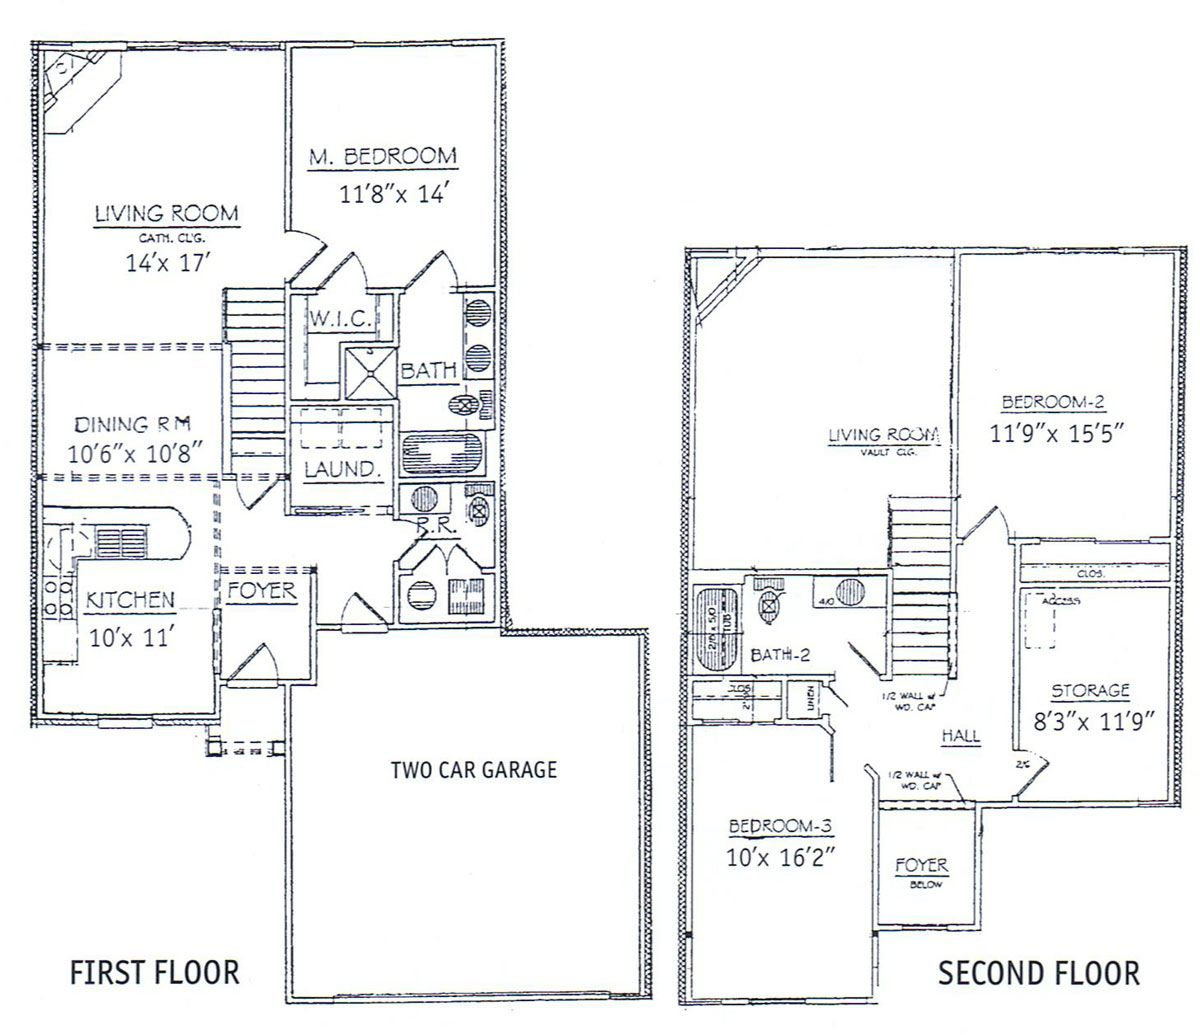 3 bedrooms floor plans 2 story bdrm basement the two for Townhouse floor plans 2 bedroom